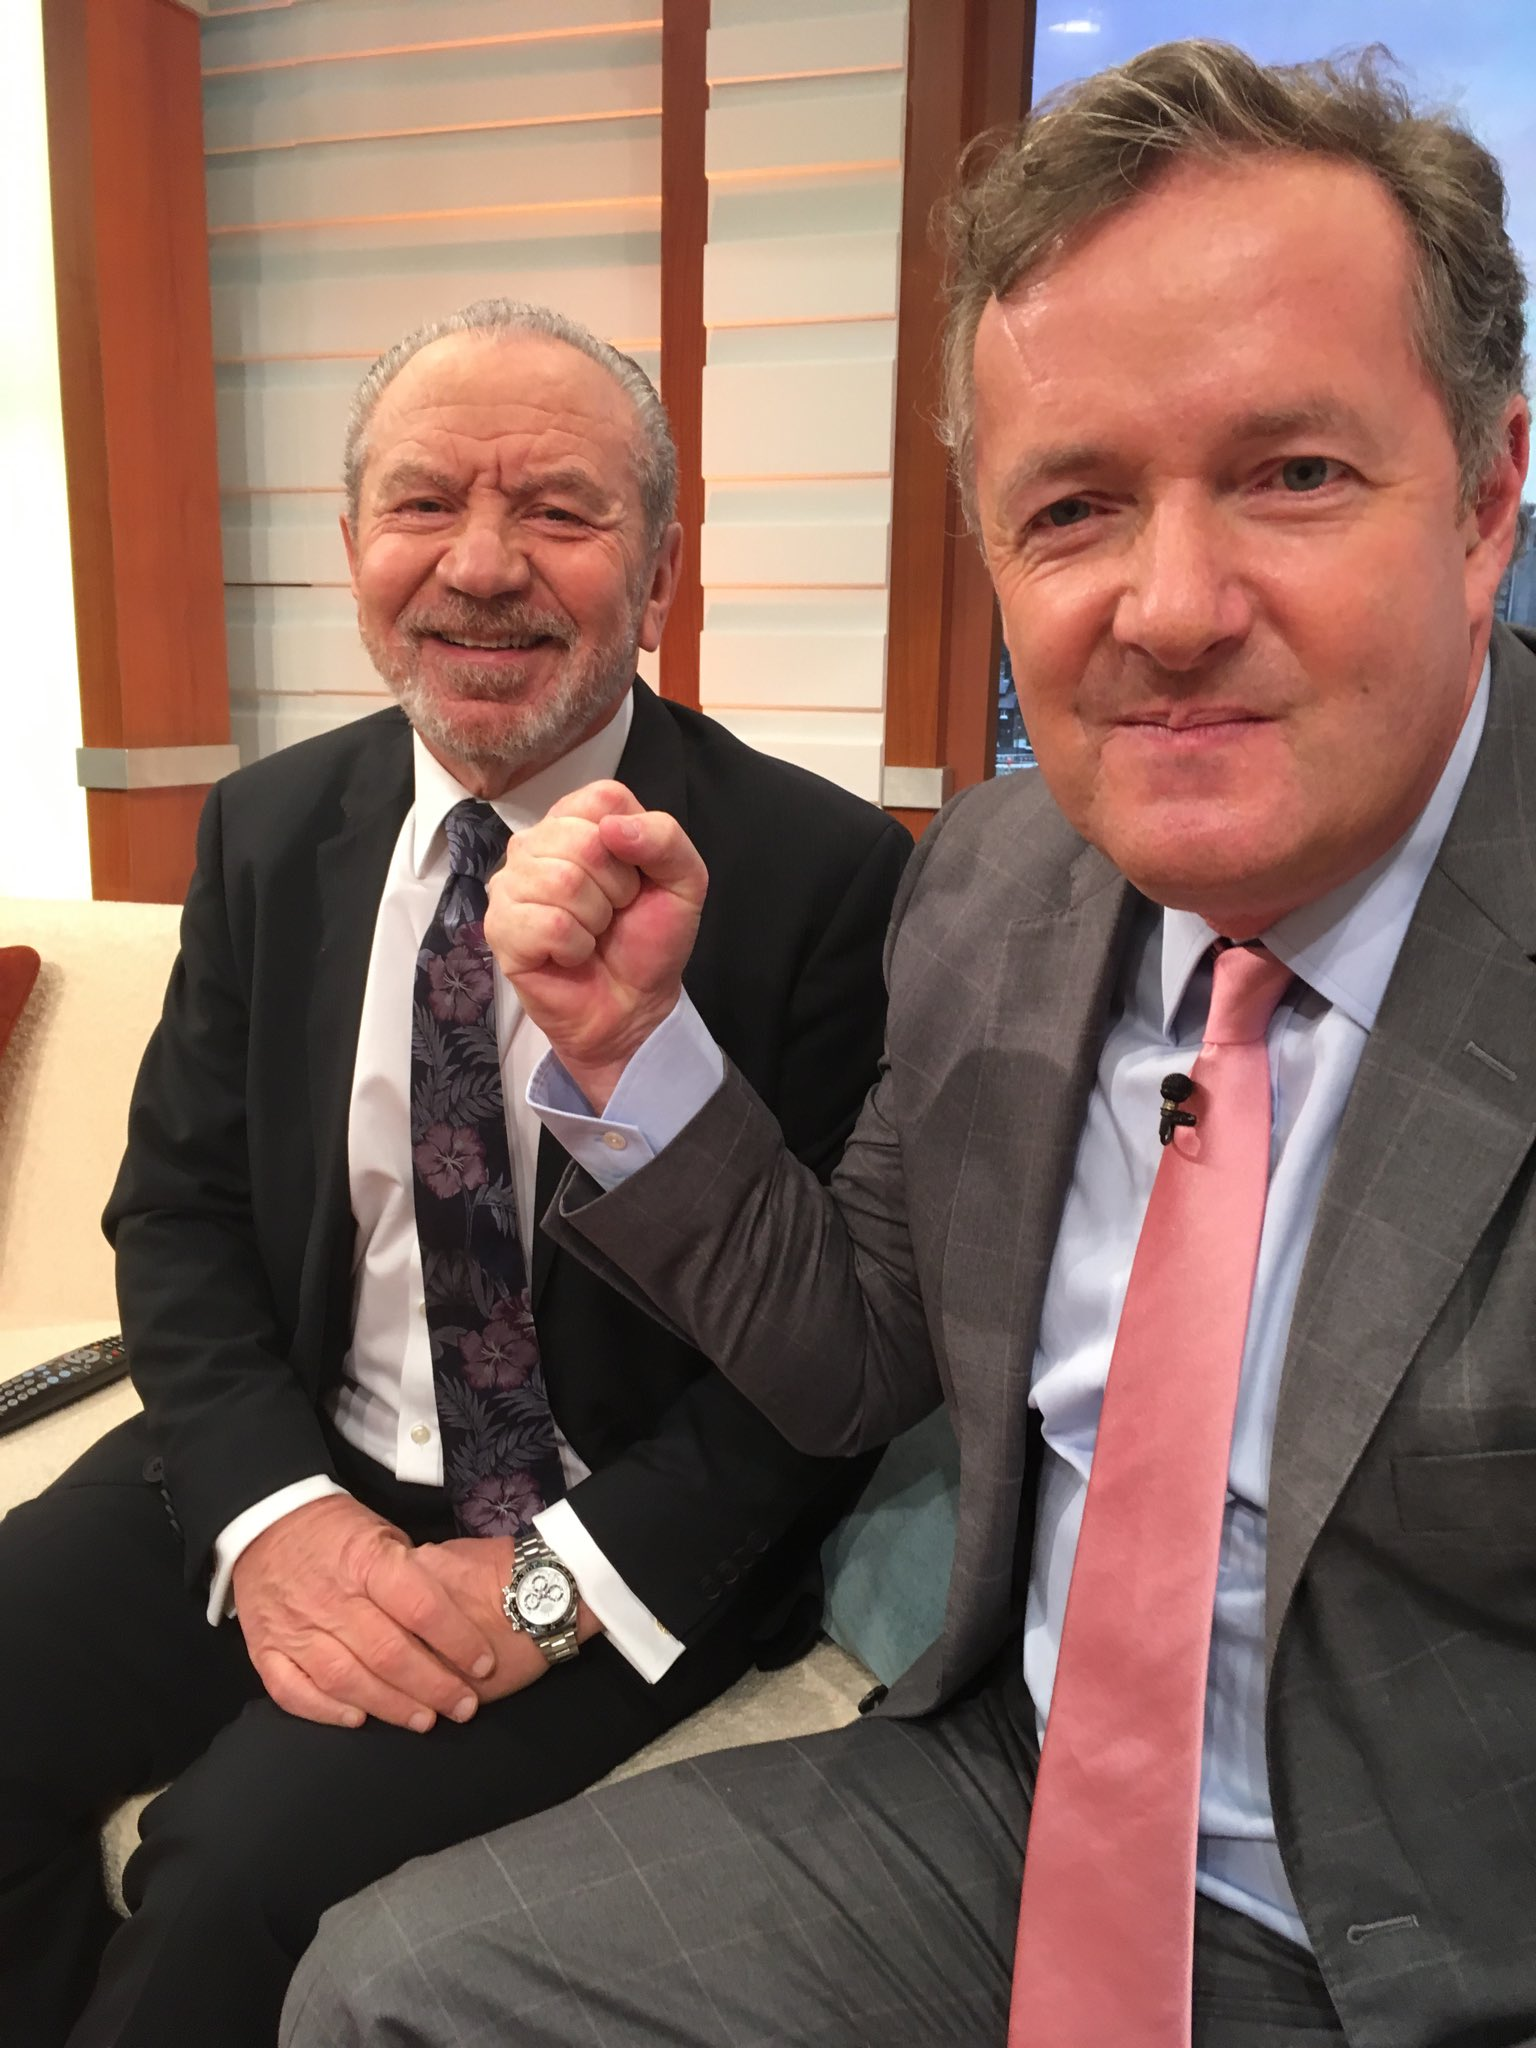 They actually like each other. @gmb #SugarvsMorgan https://t.co/wcQLv1rIJY